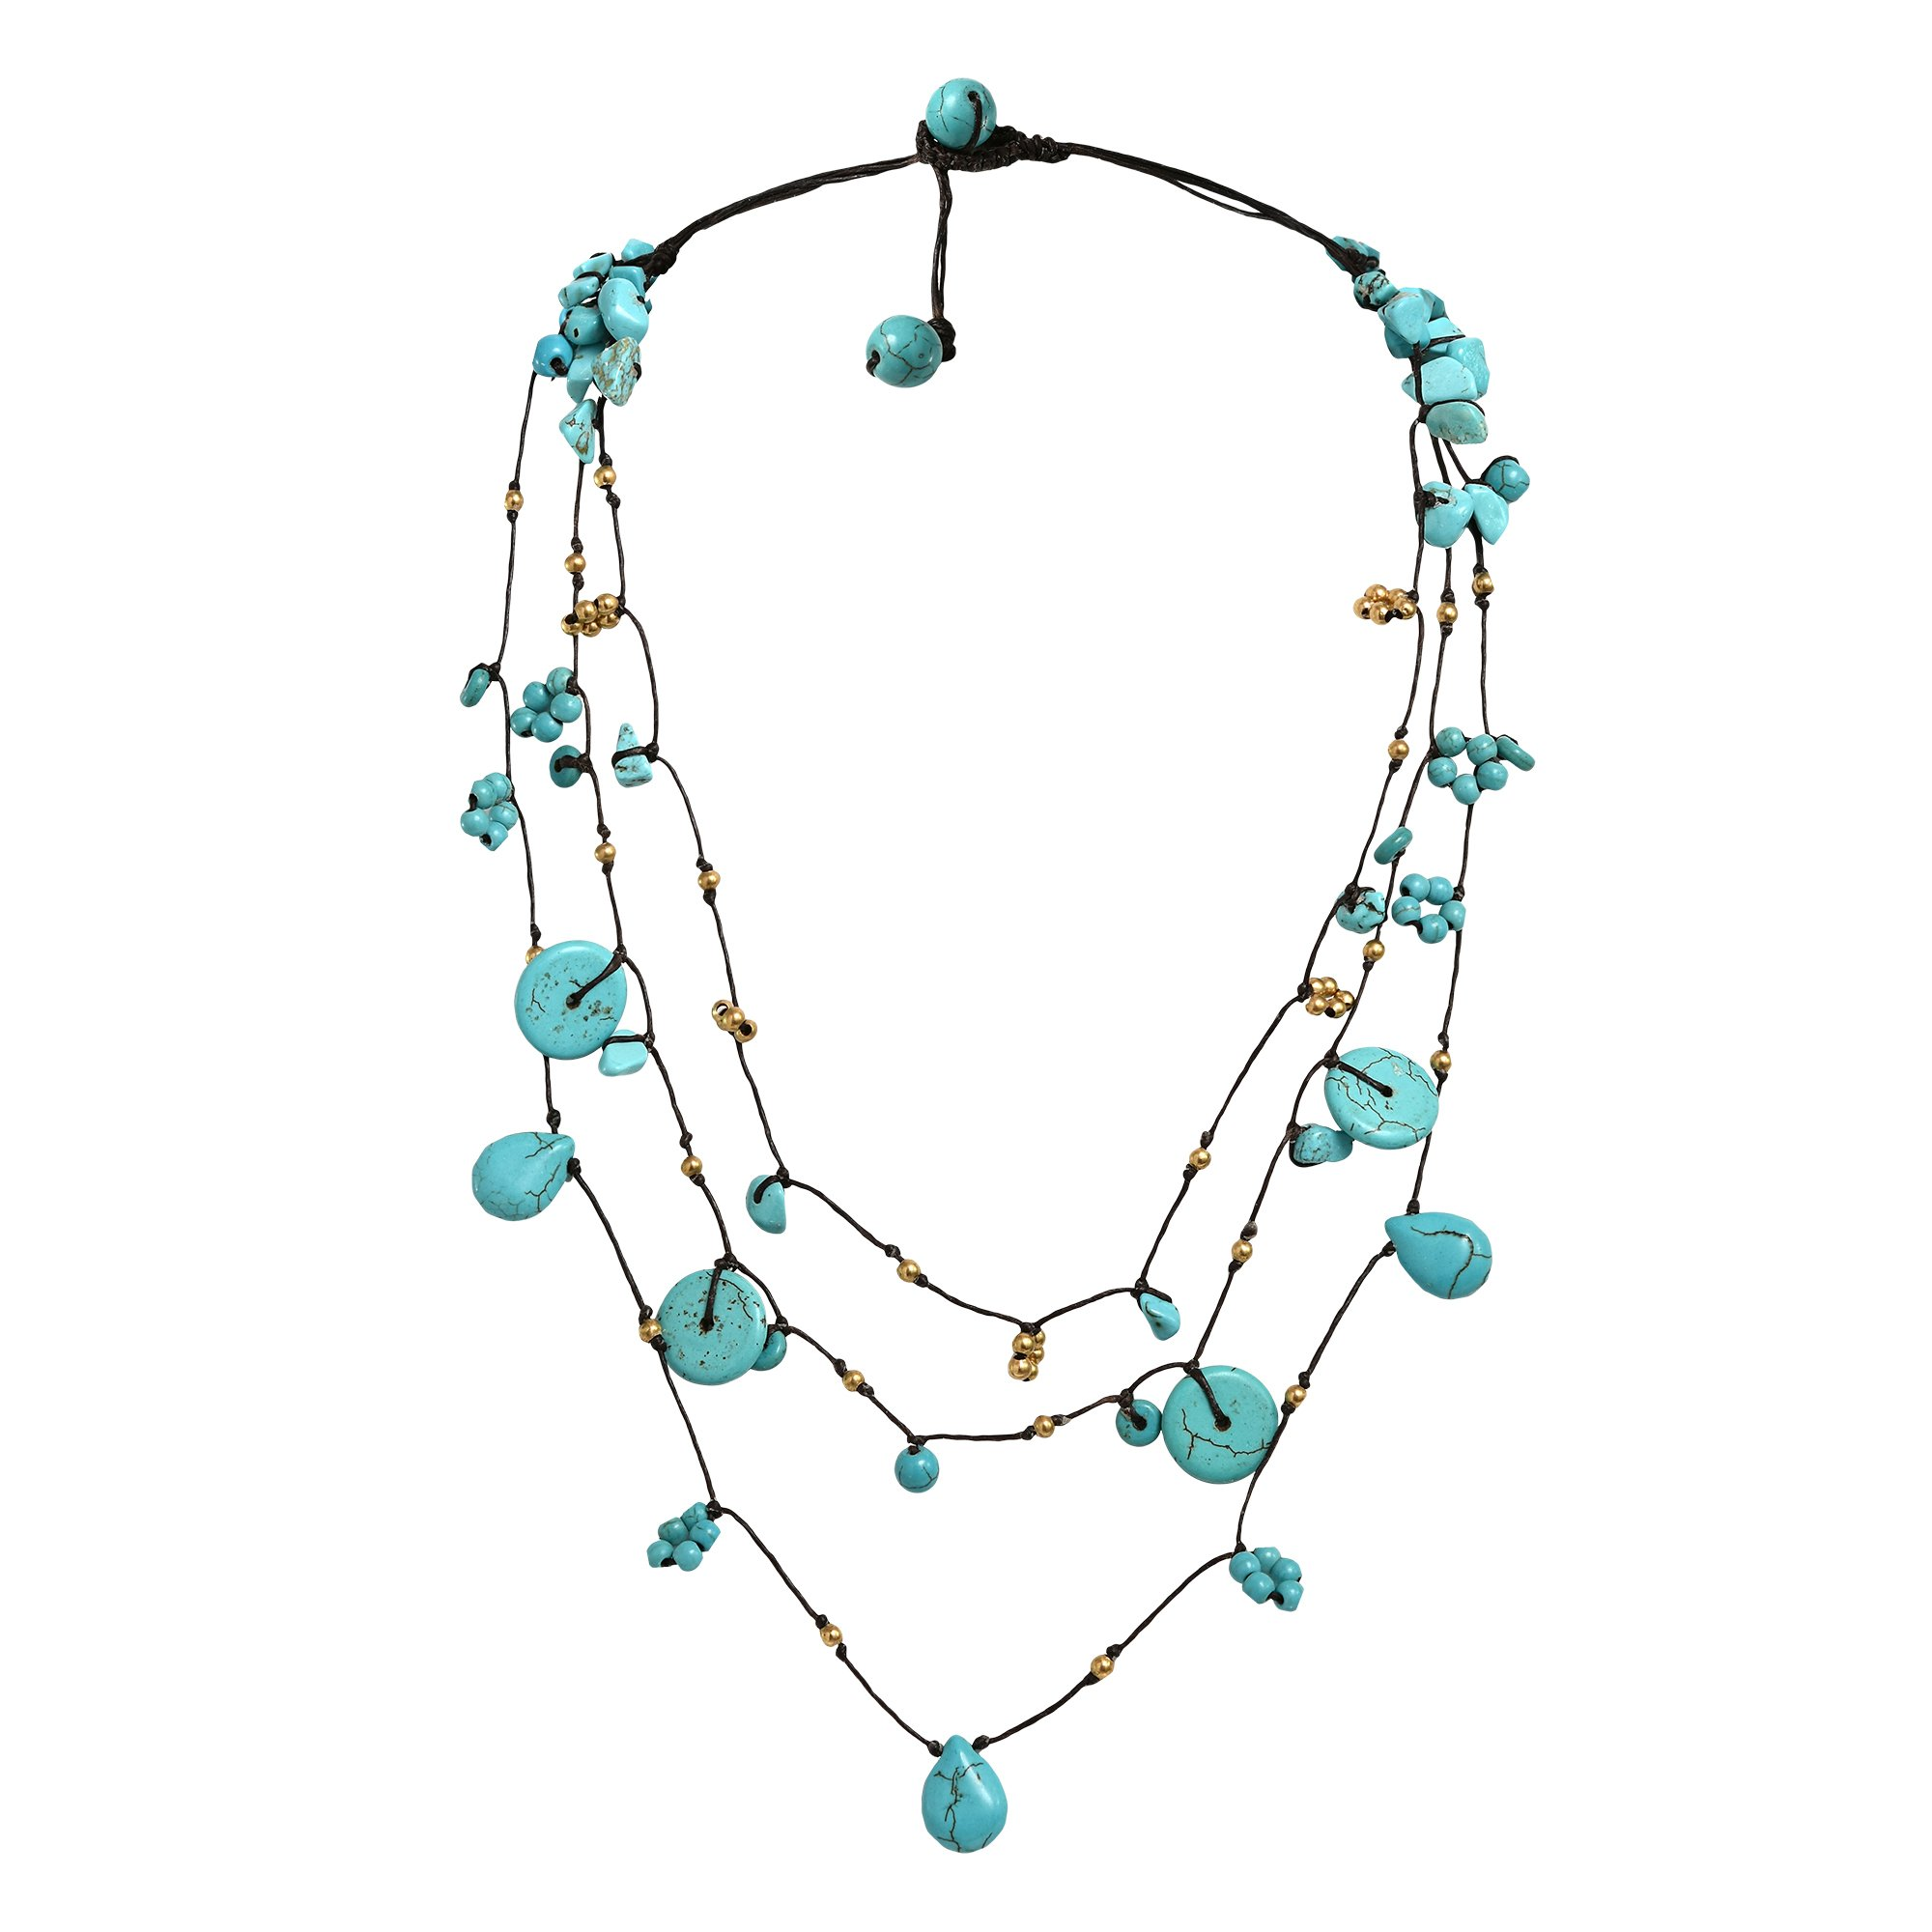 AeraVida Flowing Cascades Simulated Turquoise Brass Beading On Cotton Wax Rope Elegant Necklace